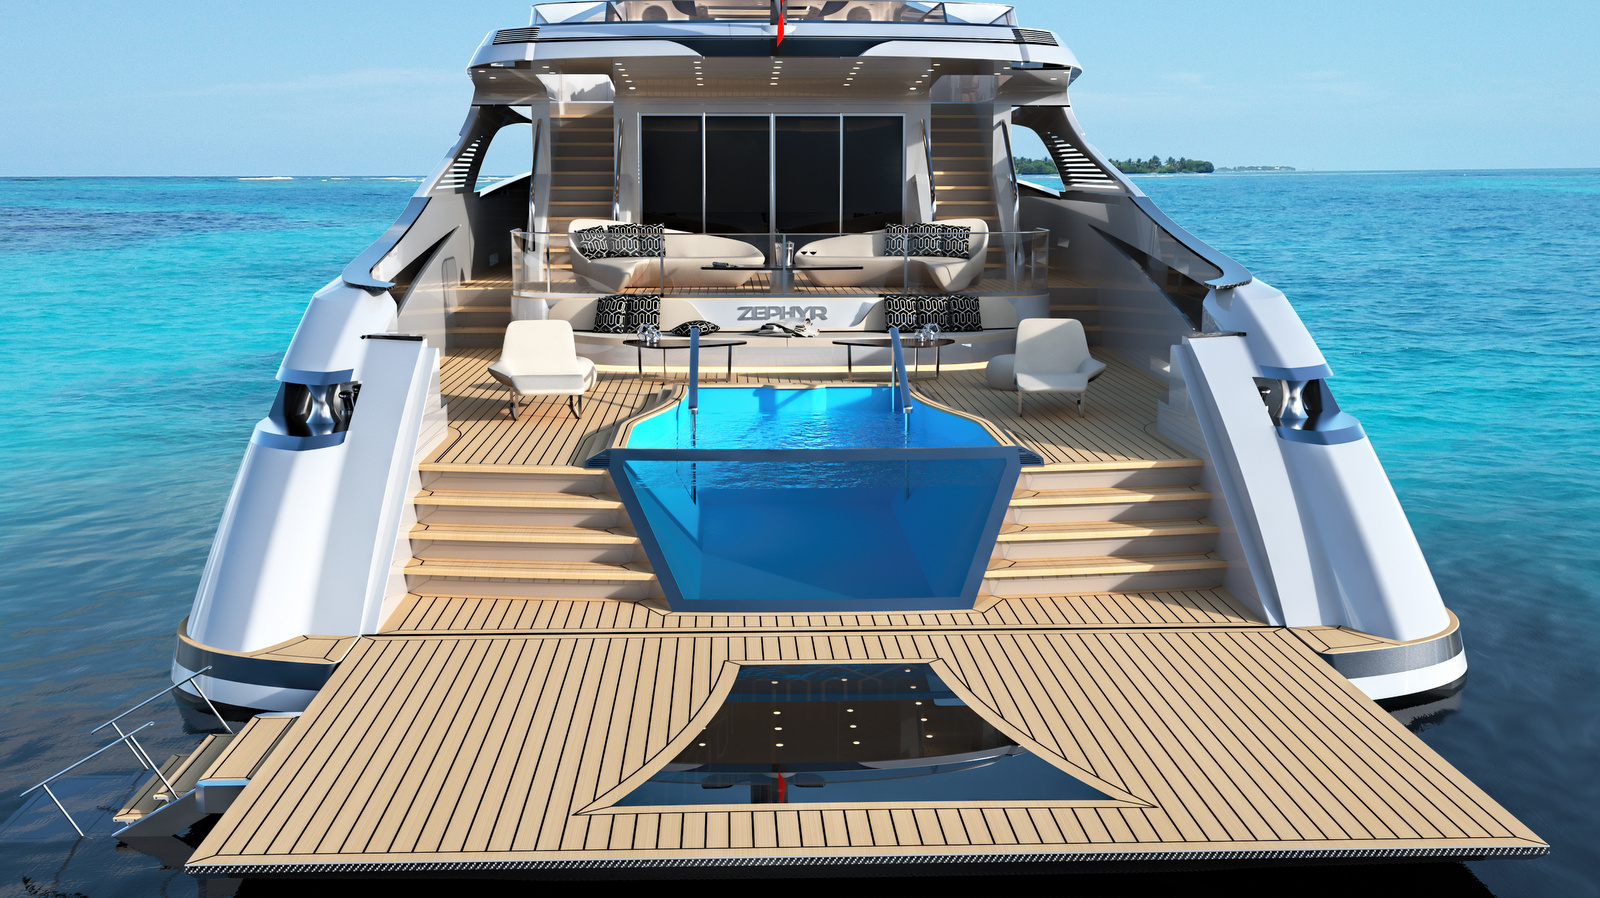 the-aft-deck-of-the-rossinavi-superyacht-concept-zephyr